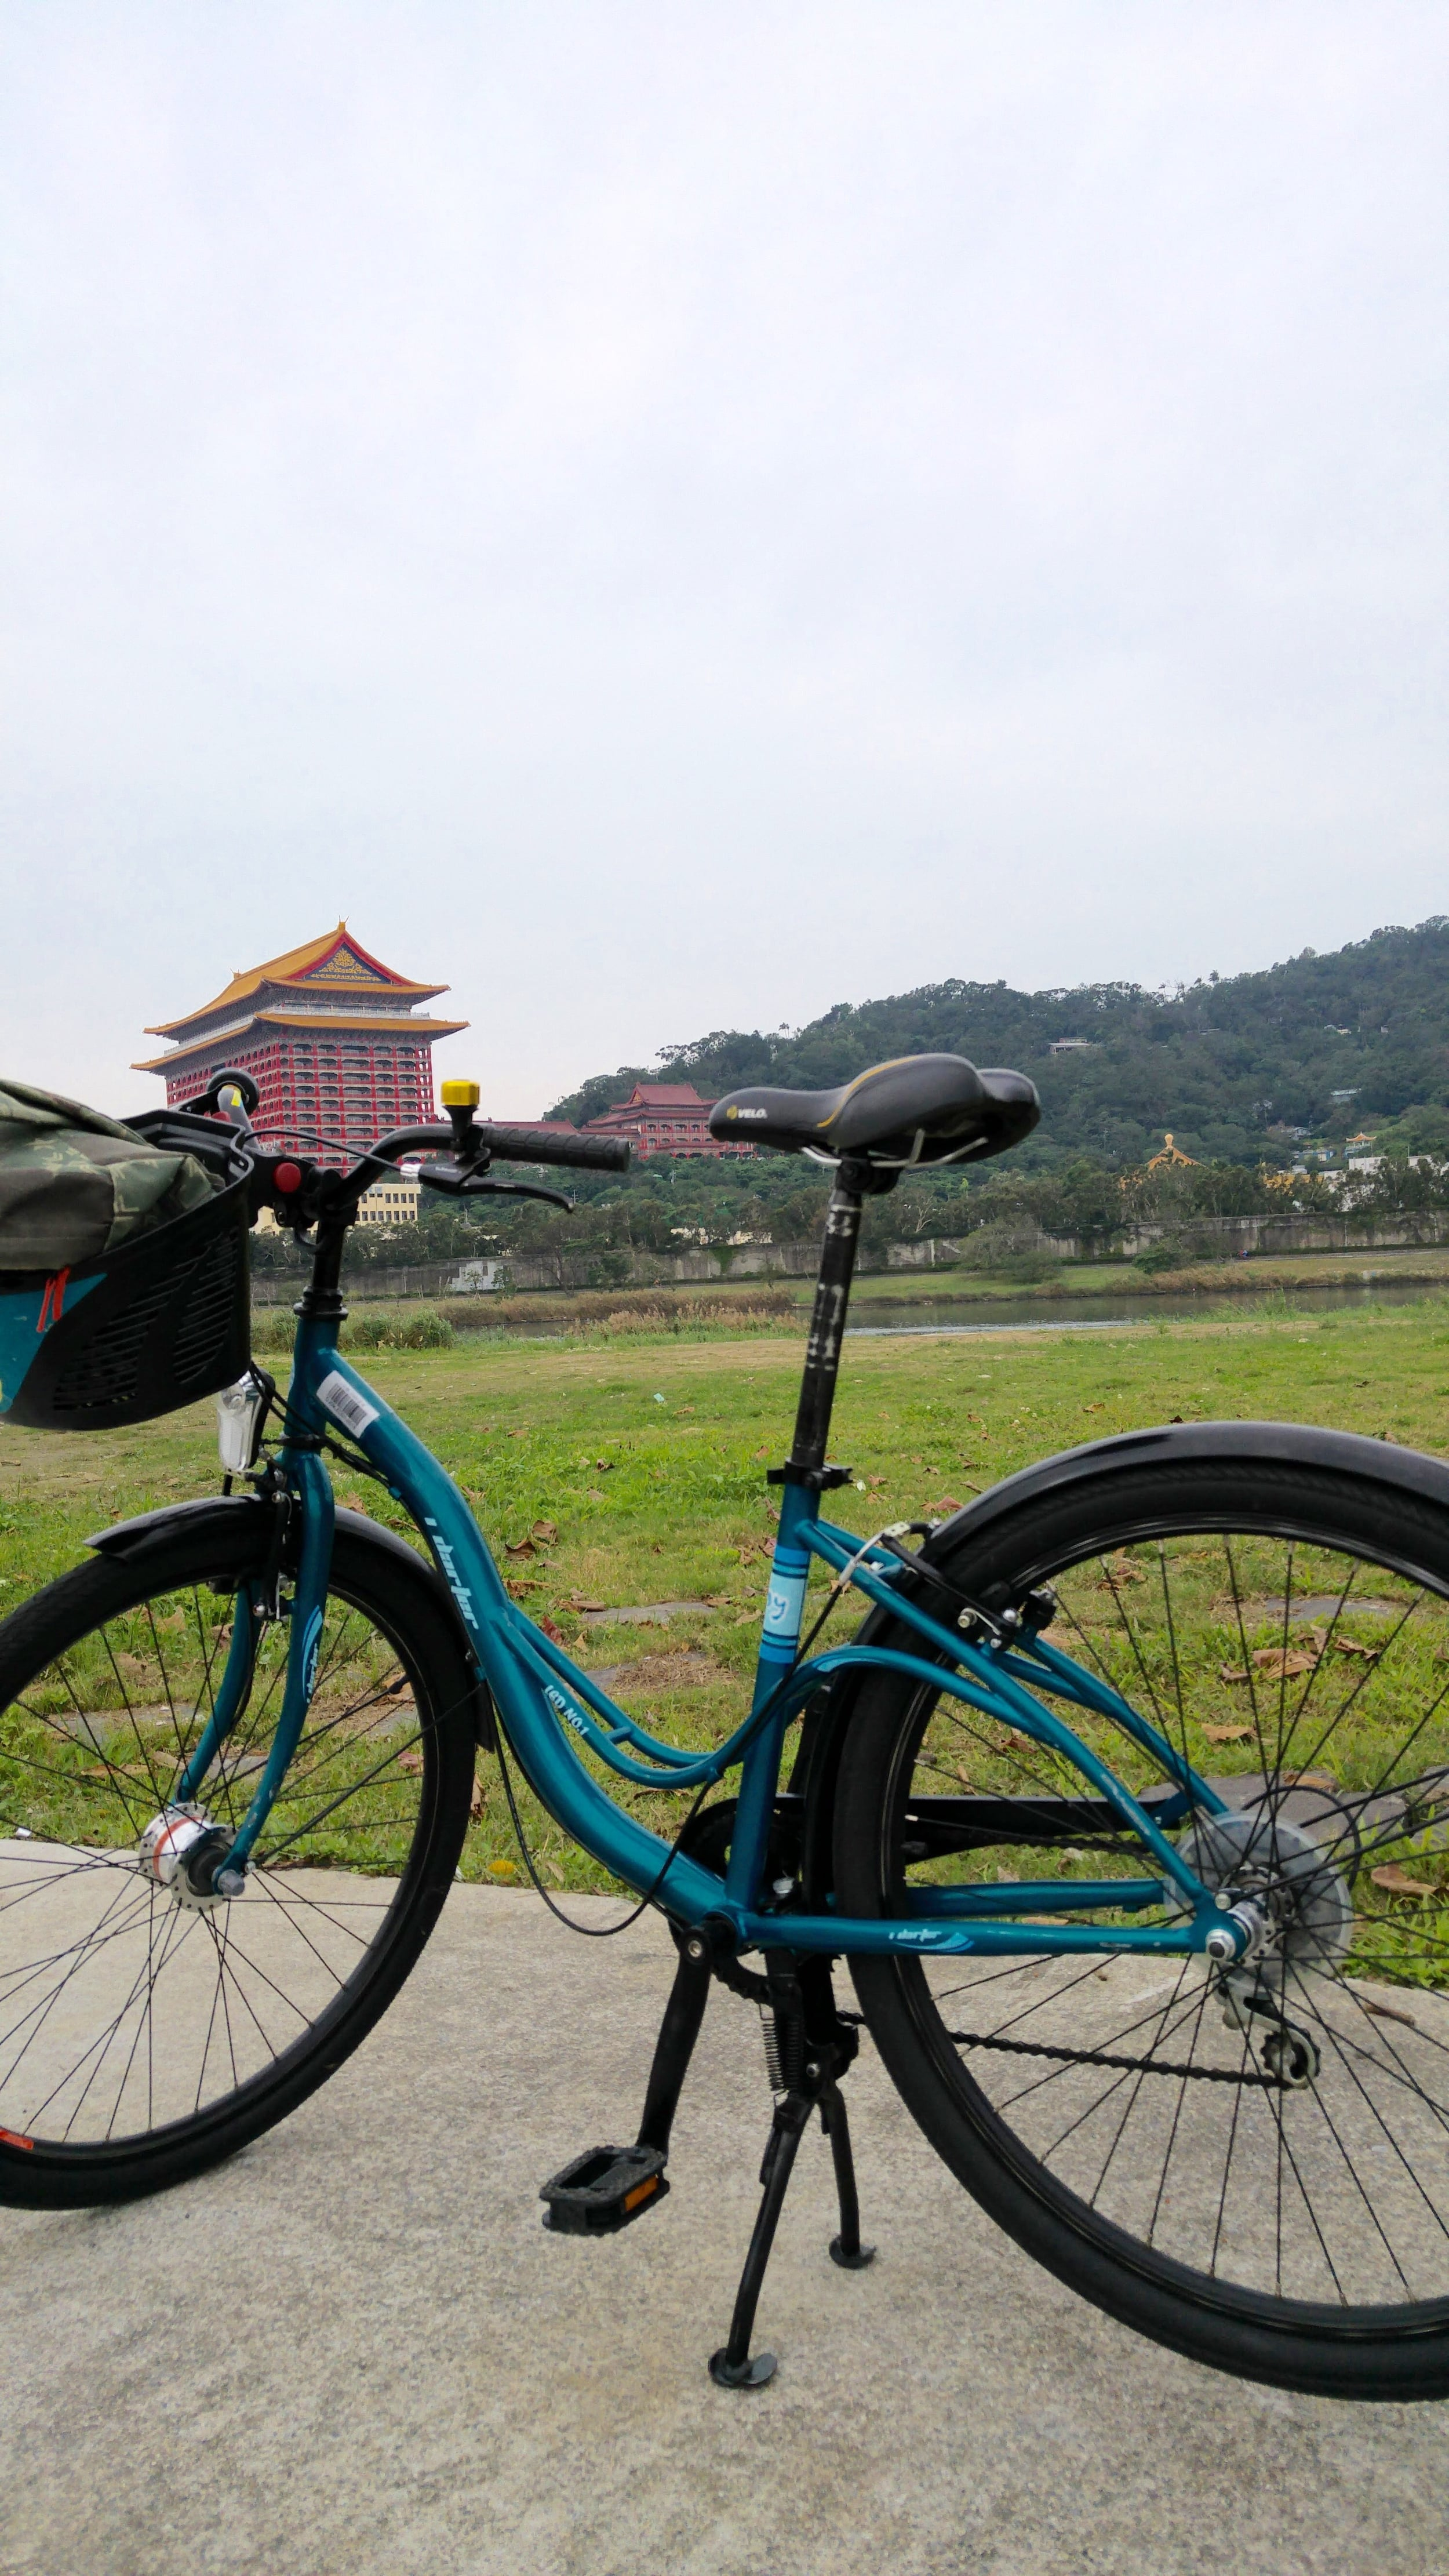 Rental bike with 6 speeds, good enough for strolling along the riverside!